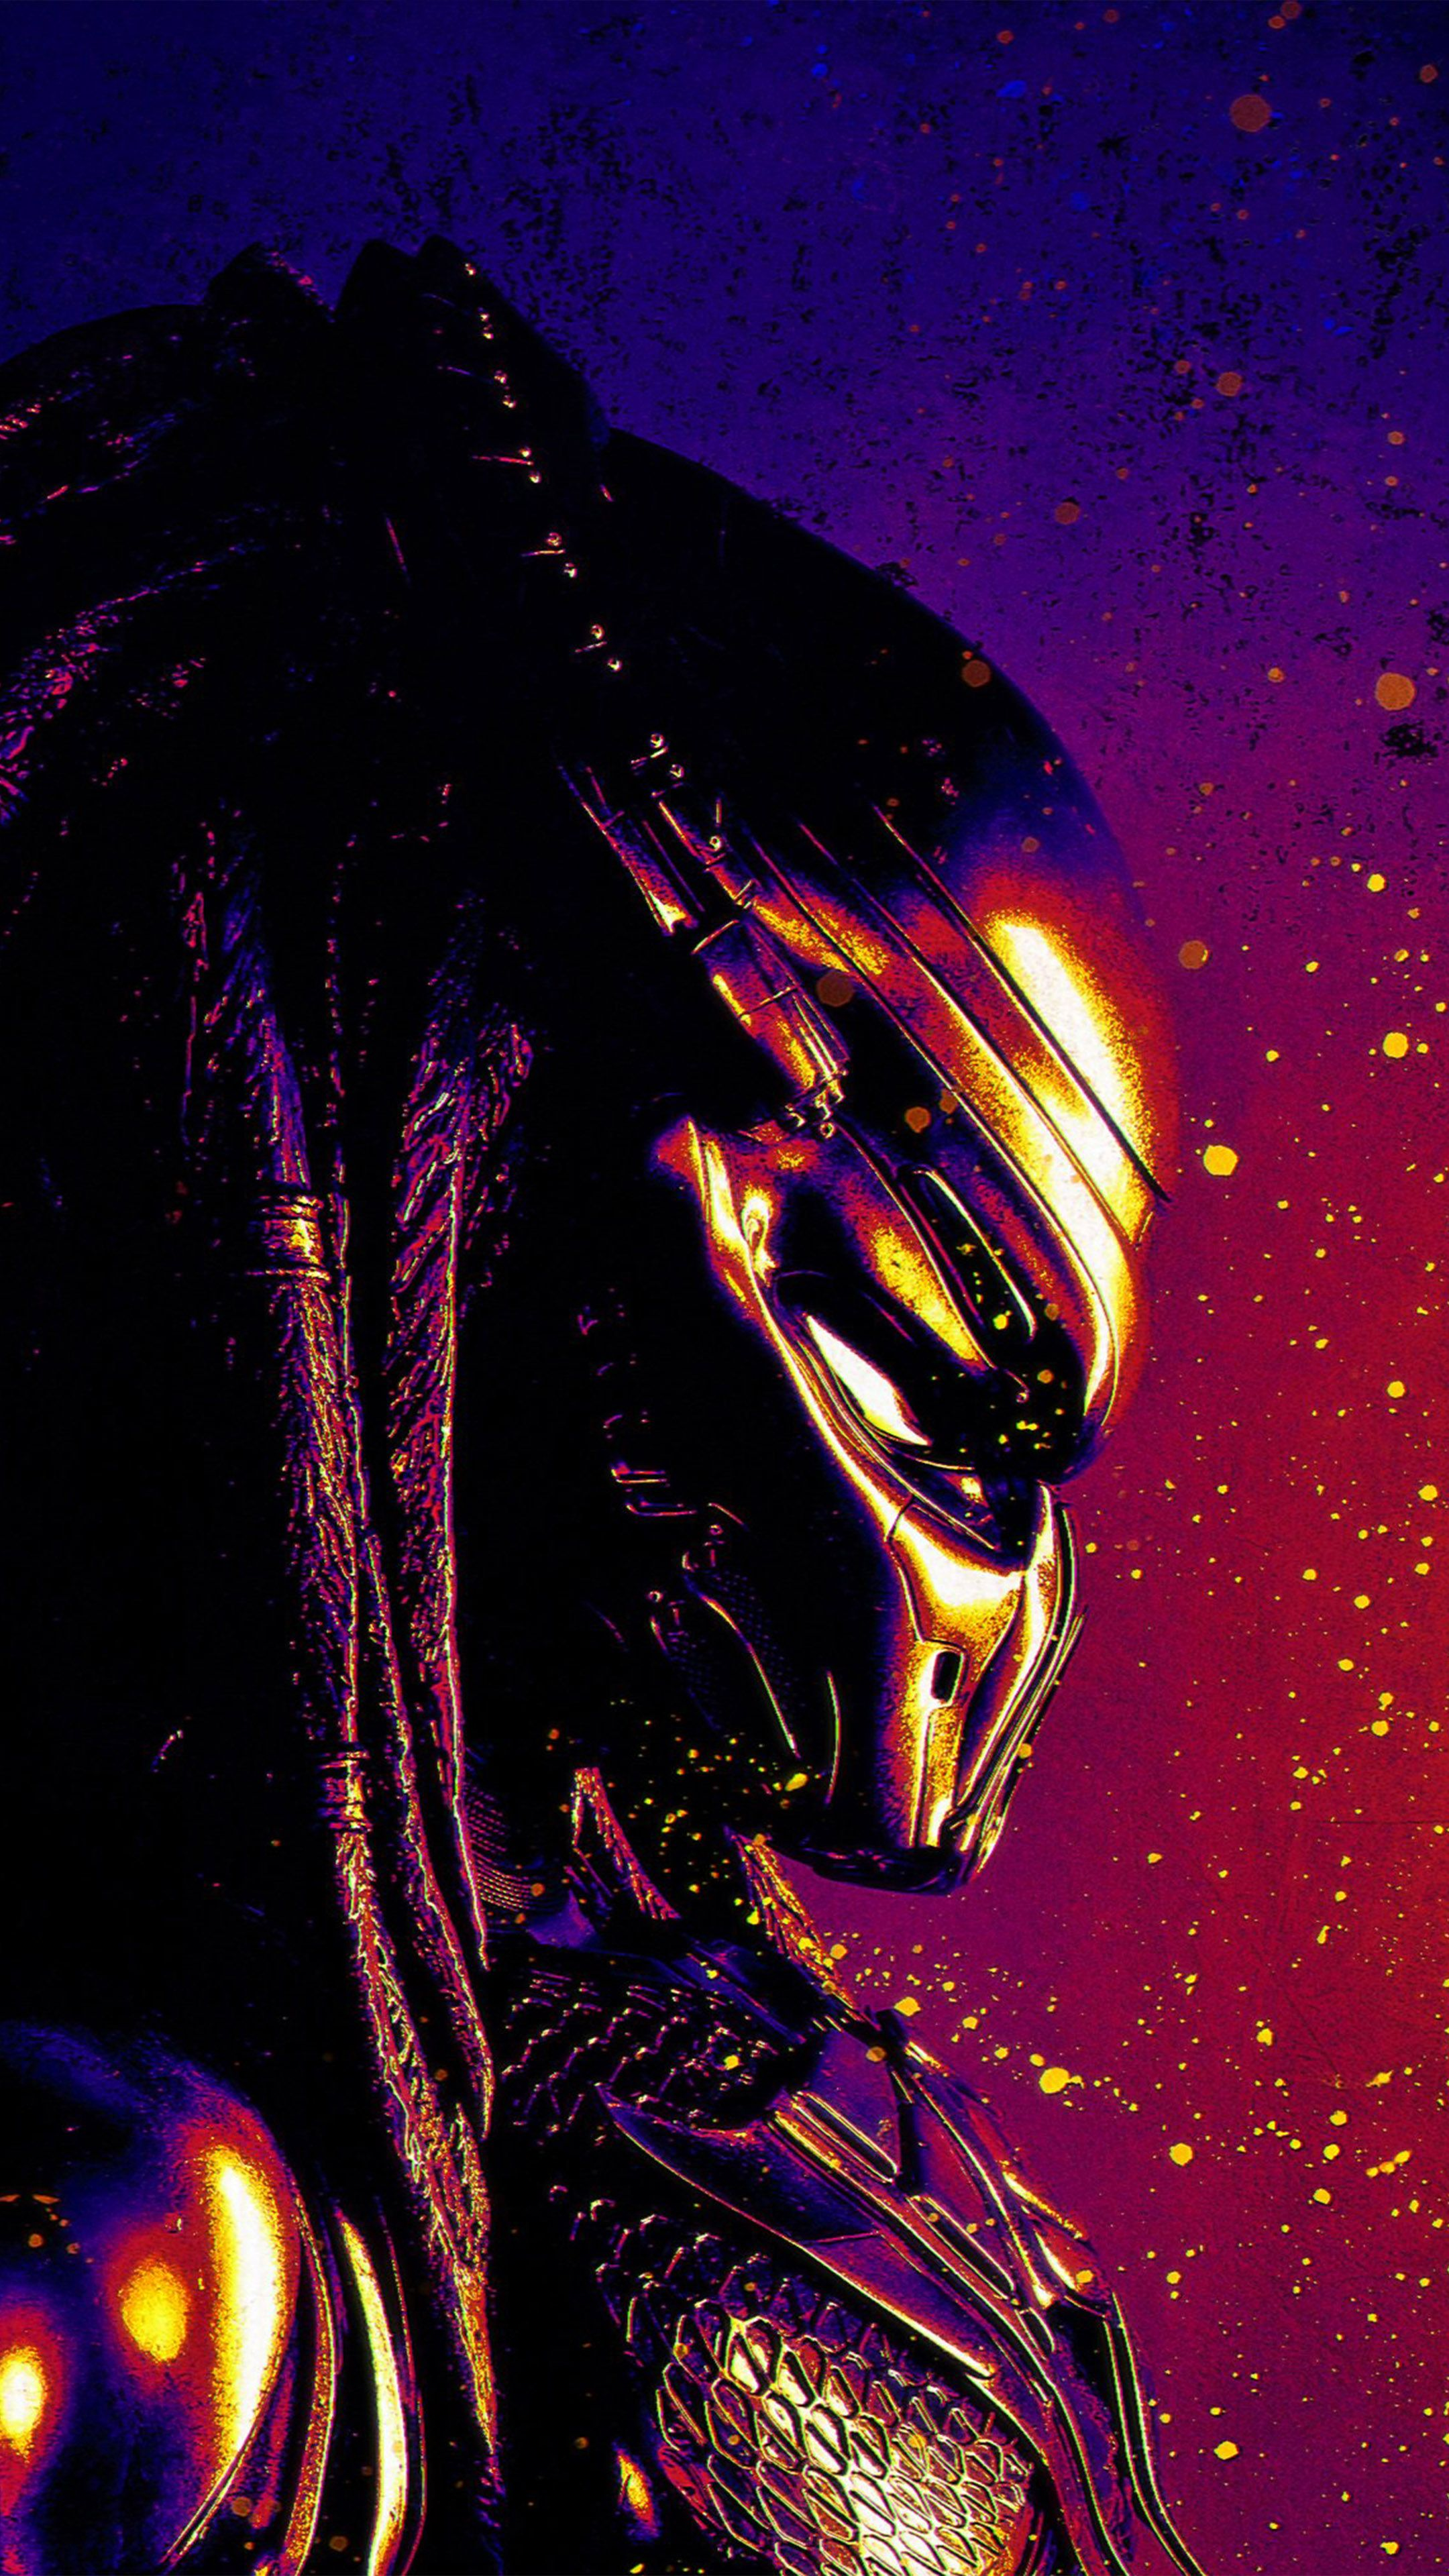 Predator 2018 Artwork | Art Wallpapers | Predator, Artwork, Art